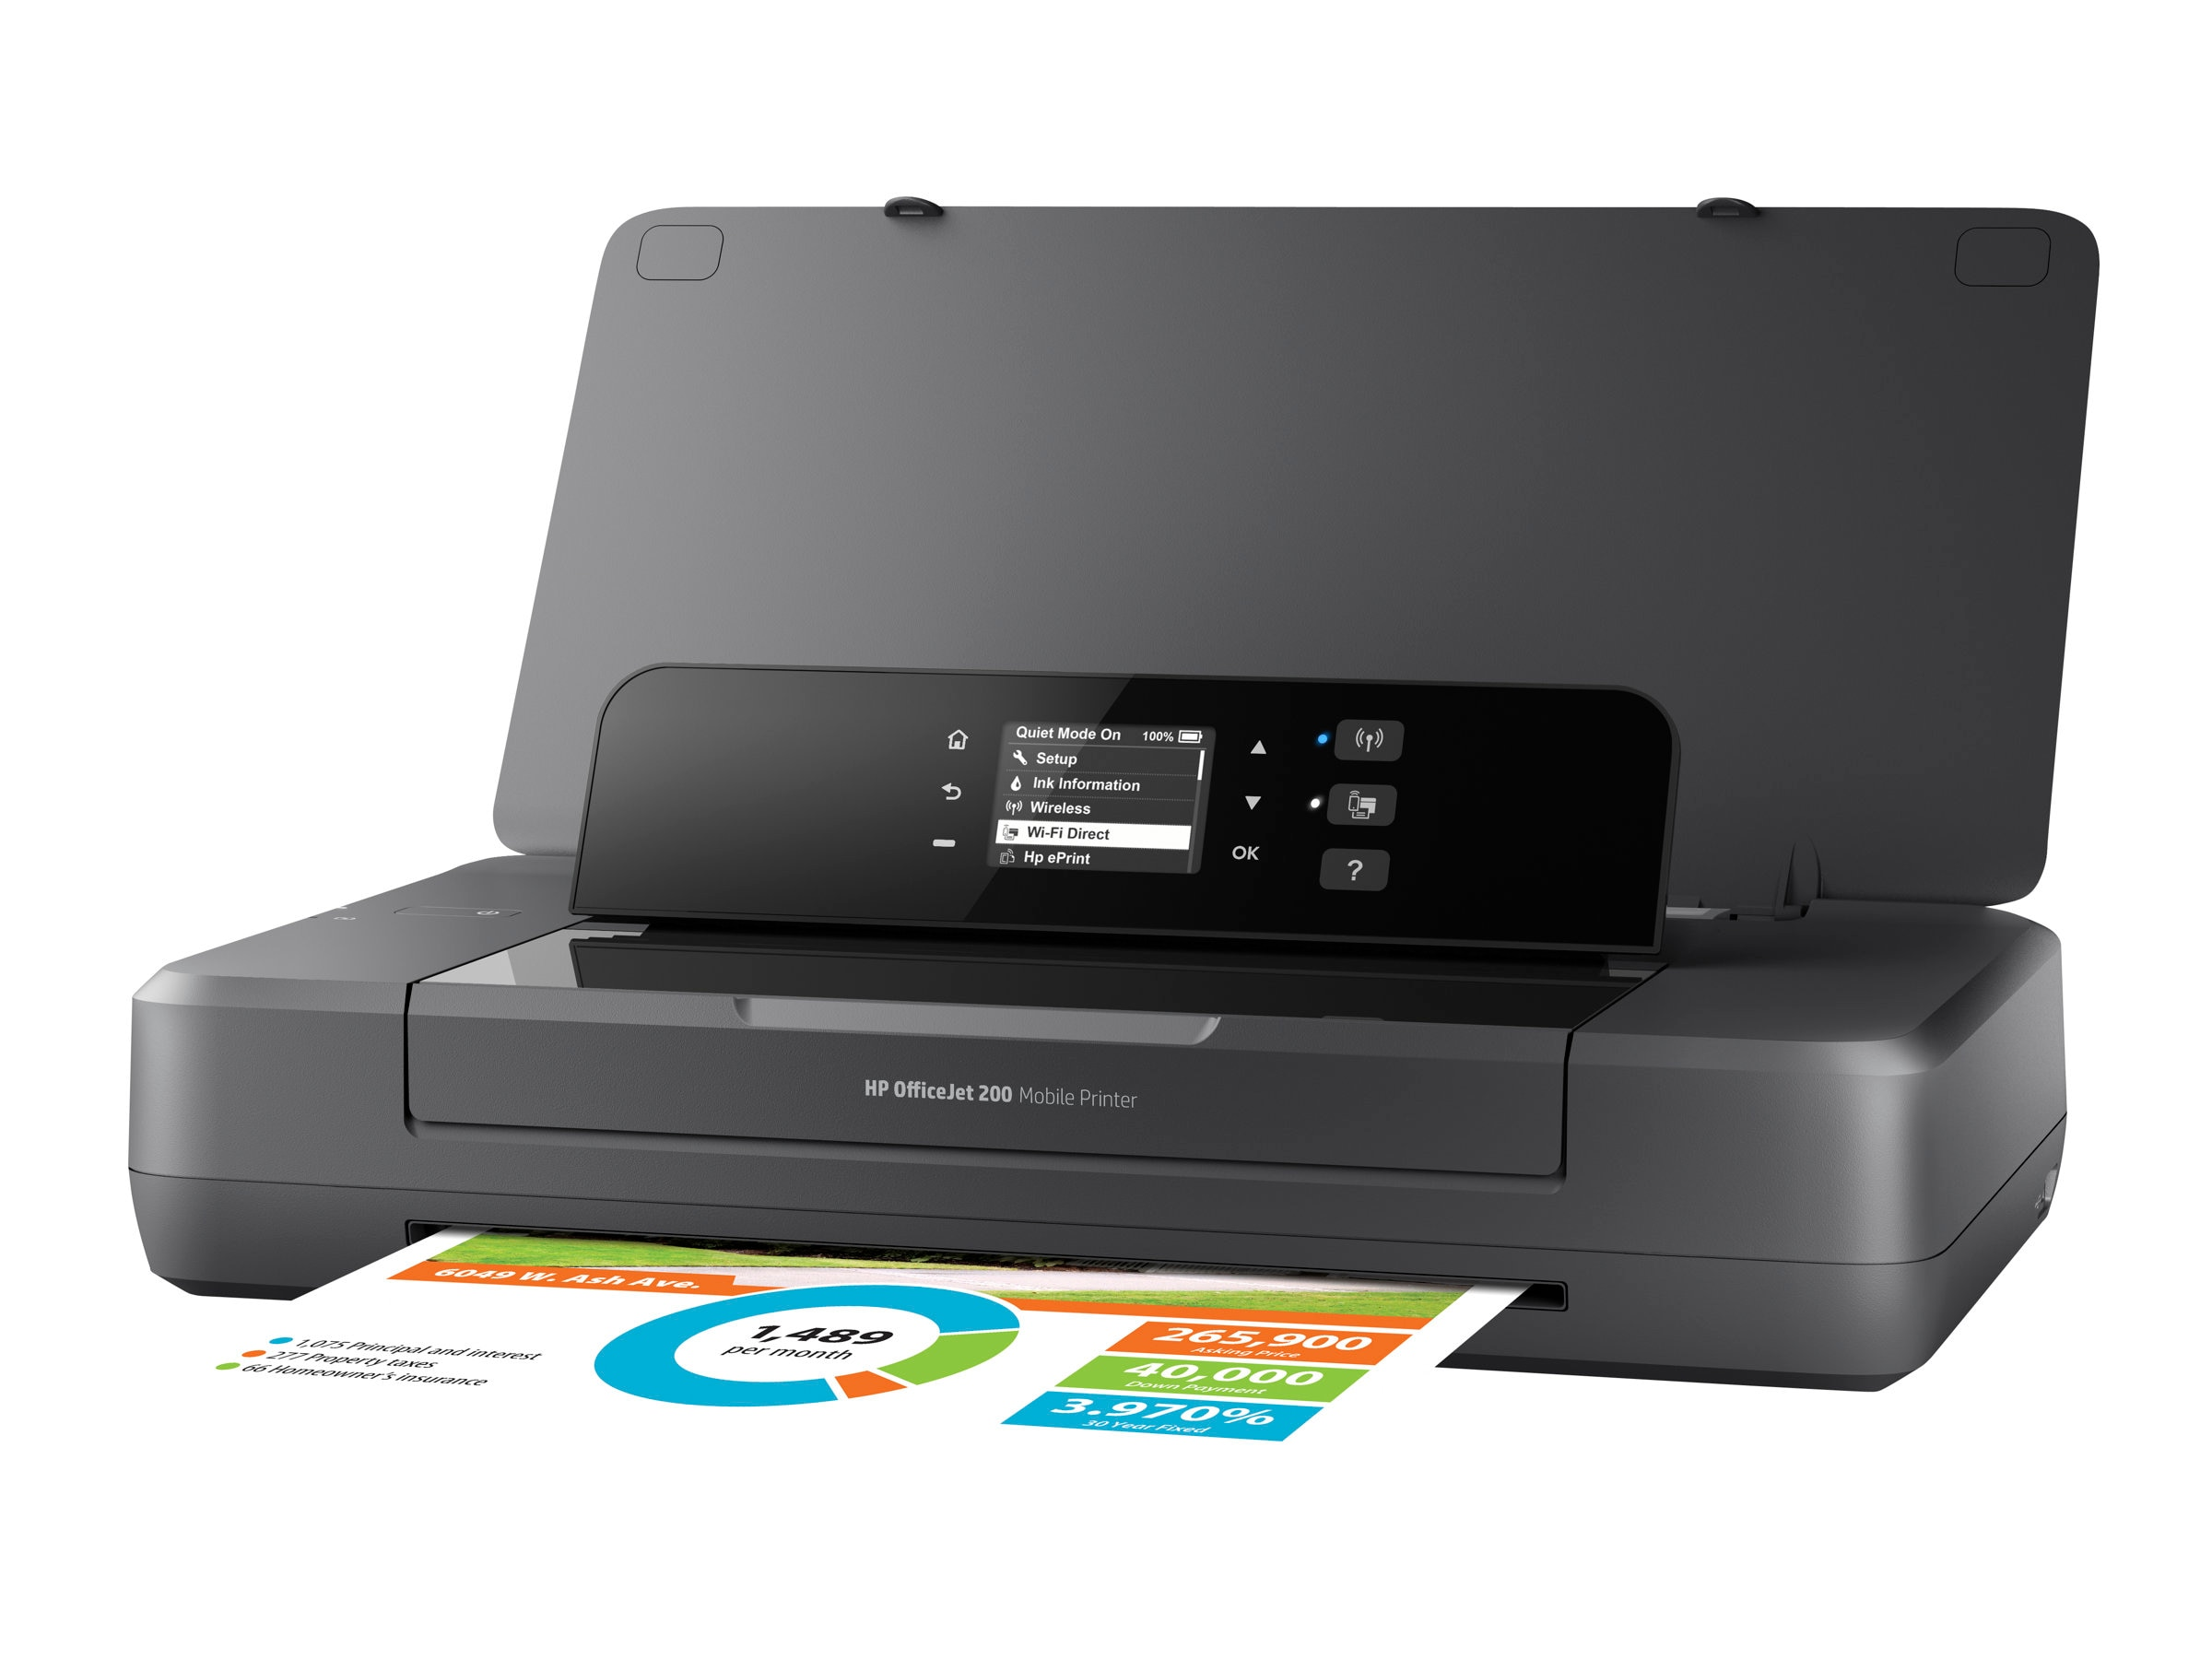 HP Officejet 200 Mobile Printer ($279.99-$80 IR = $199.99. Expires 8 31 2017)